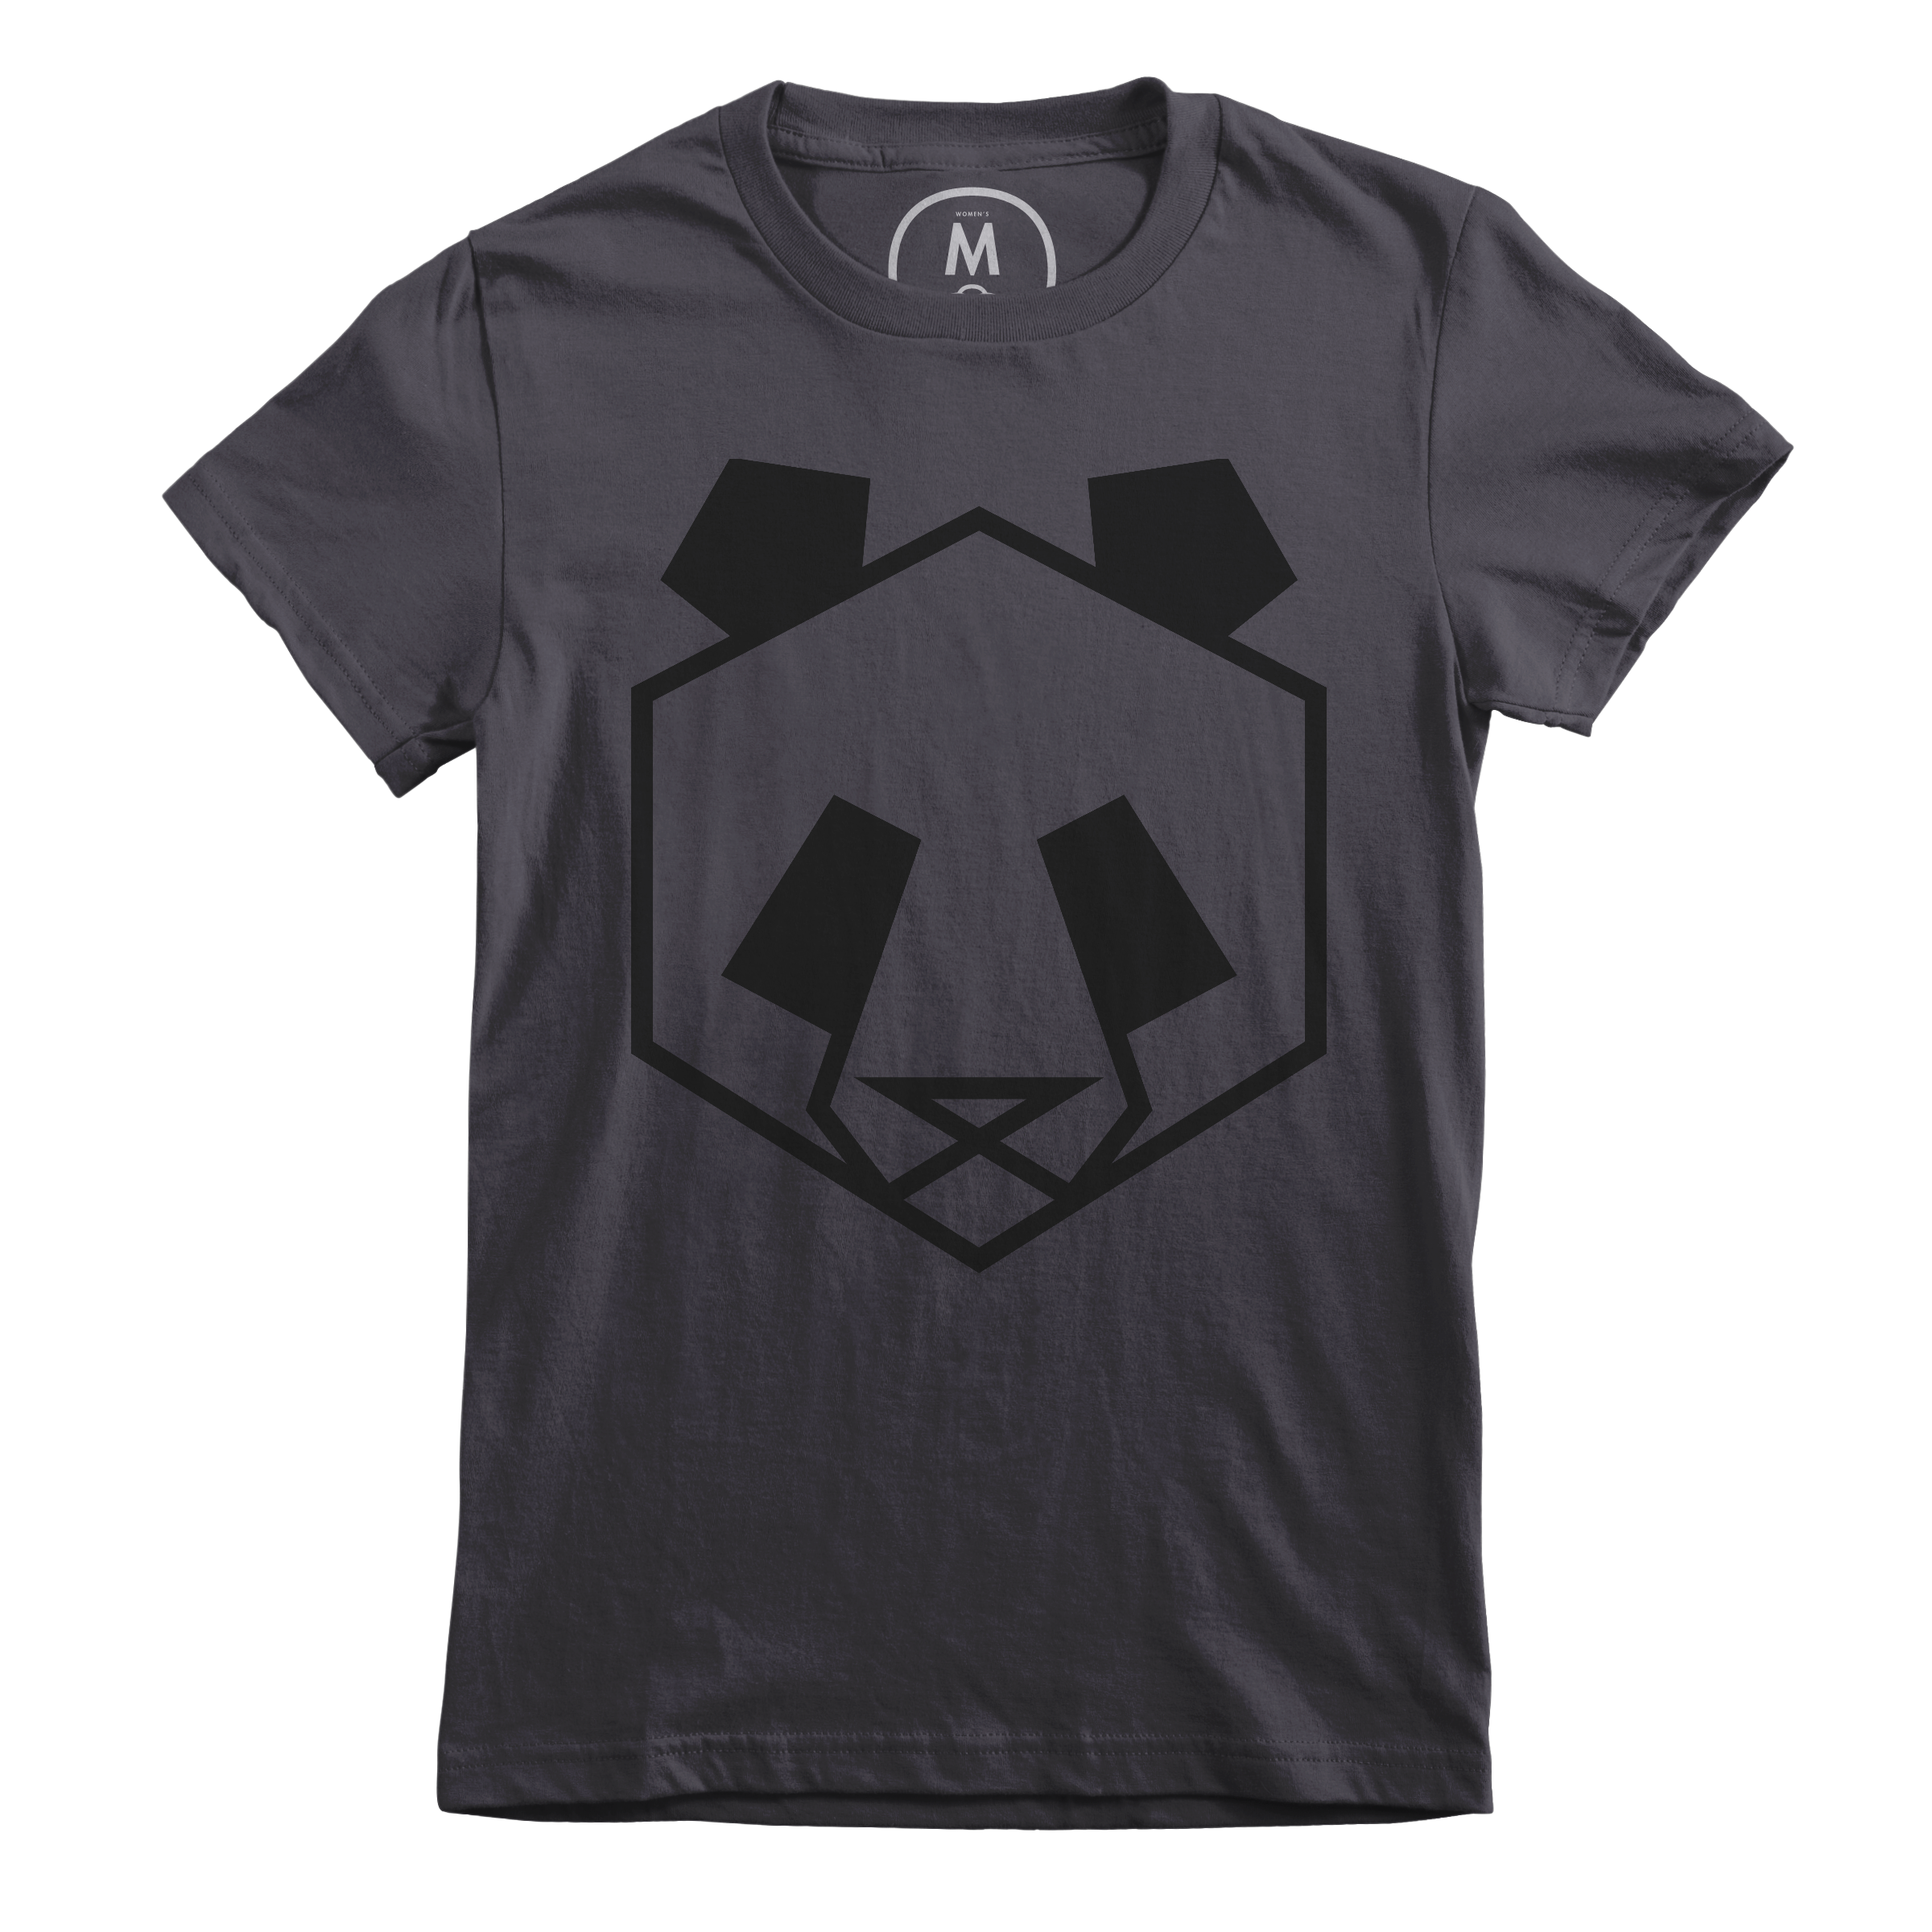 Geo Panda Heavy Metal (Women's)